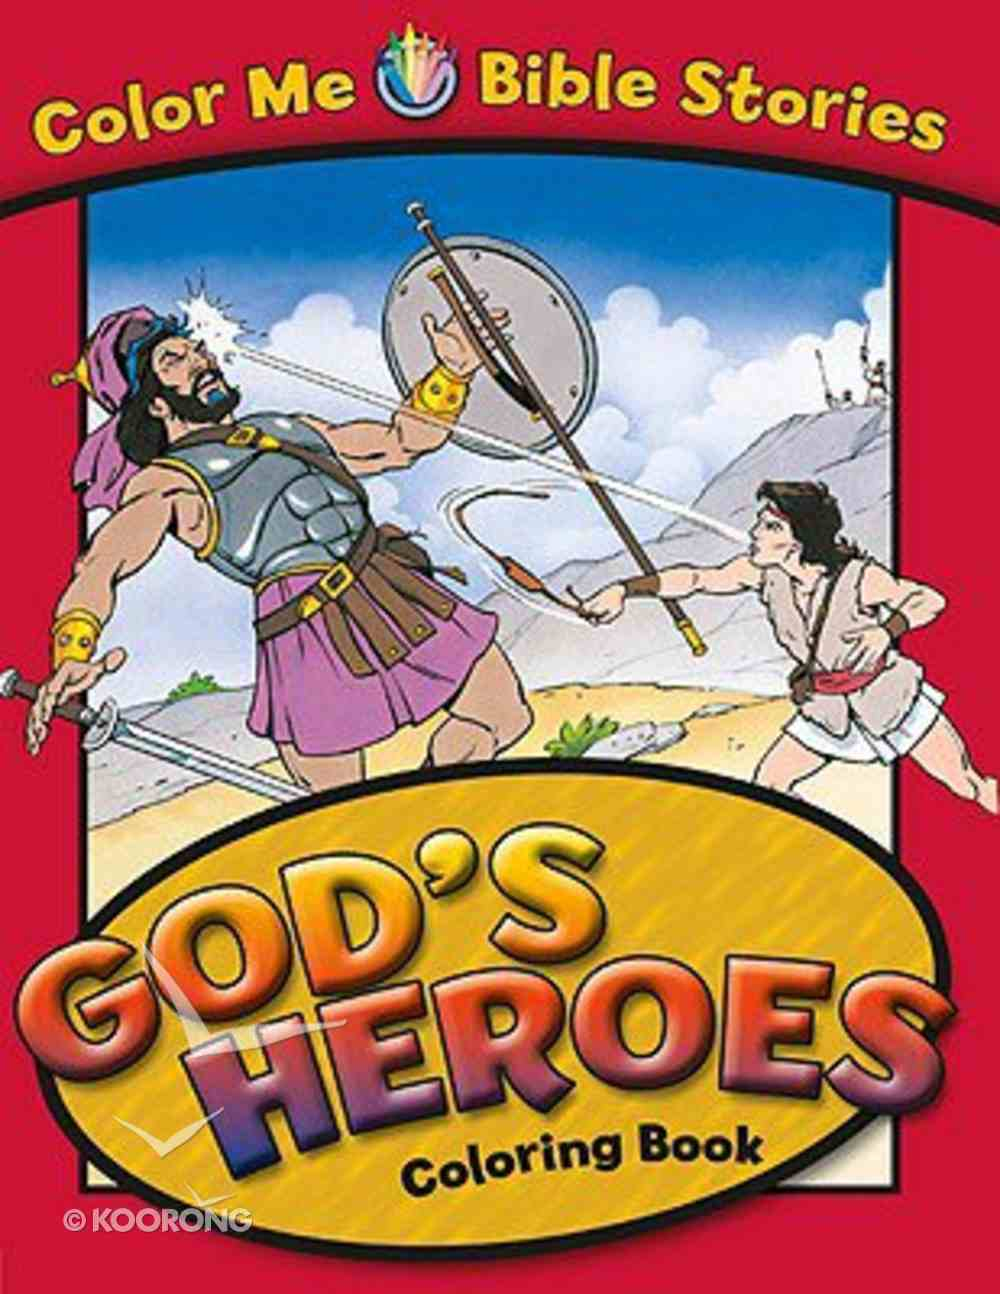 God's Heroes Coloring Book (Color Me Bible Story Series) Paperback